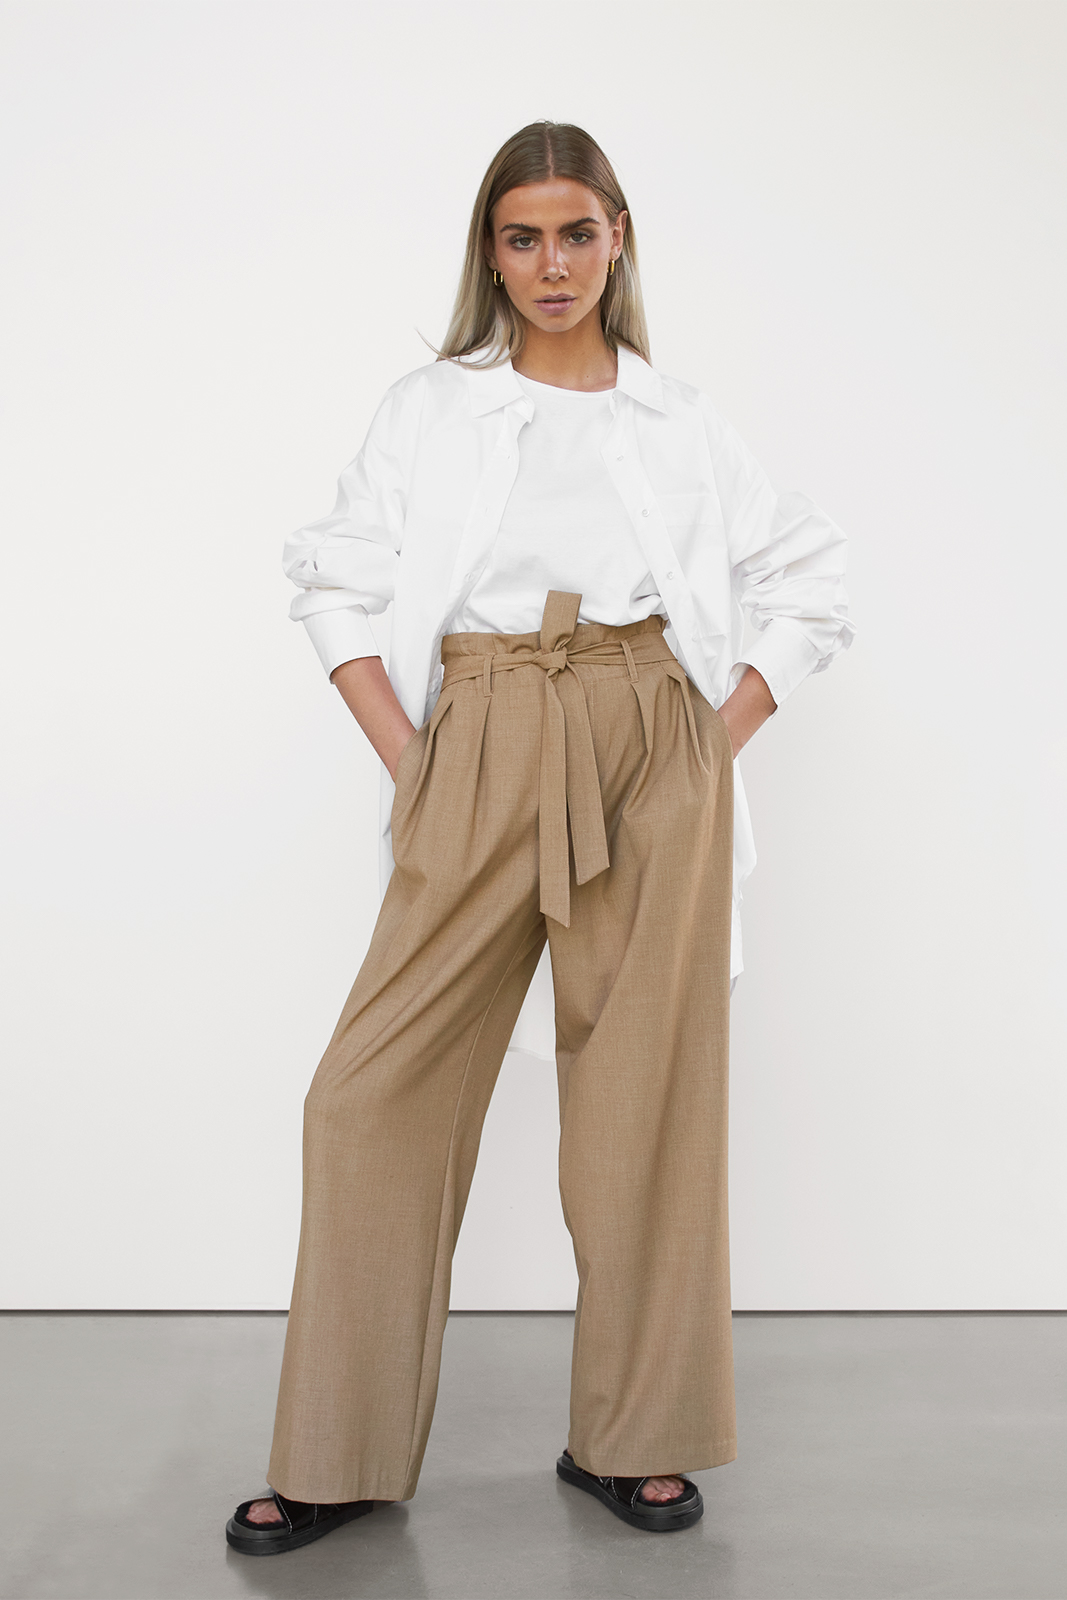 woman in loose pants, white tee and white shirt